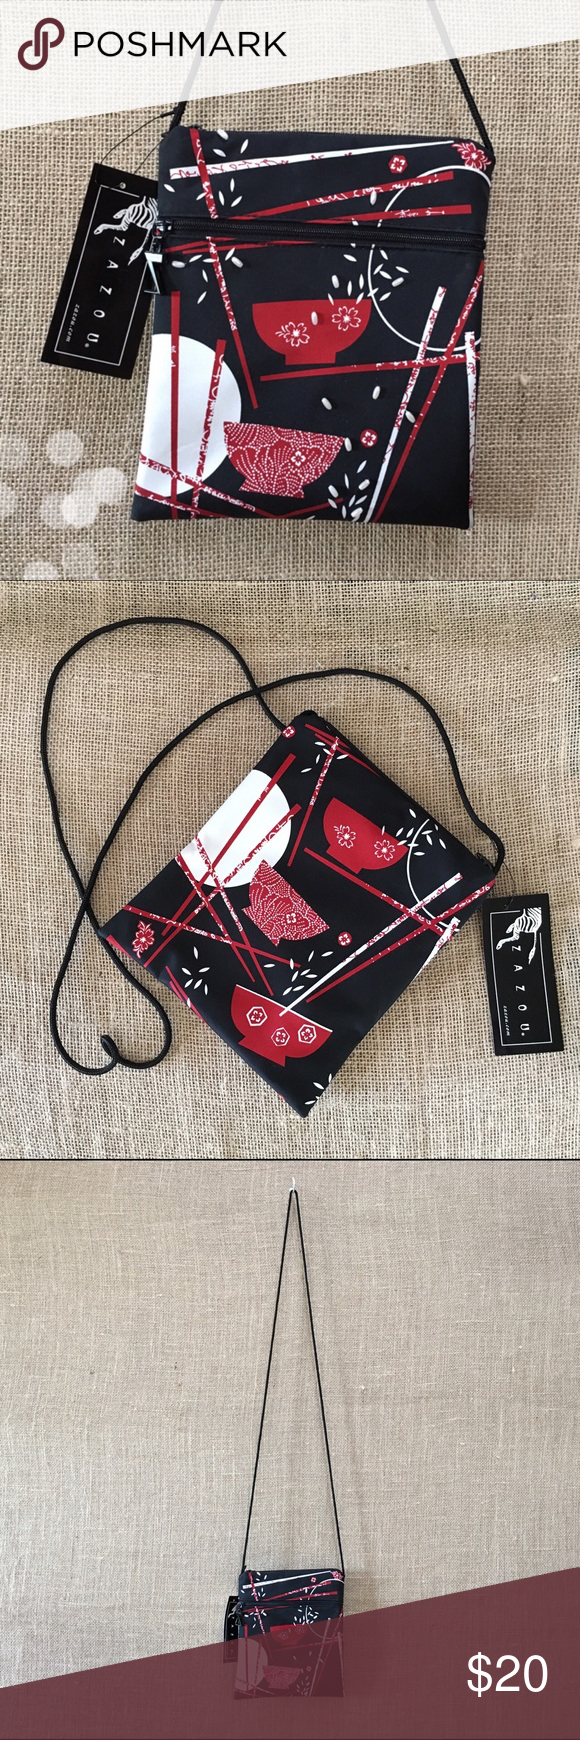 """Zazou Chopstick Bohemian Sac Sweet little crossbody with a matte silky finish and sewn-on mini pearlescent beads making 3D rice on the front of the bag (such a great detail!) From a boutique shop, pricetag still attached and says $27.95. Measures 6.5""""w x 8""""h with a 24"""" strap drop. 2 zipper pockets with black interior lining. Only flaw: chipping on top zipper (revealing silver) but I purchased it like this. Barely noticeable: you can see it in photo #4 if you get out your magnifying glass🔍…"""